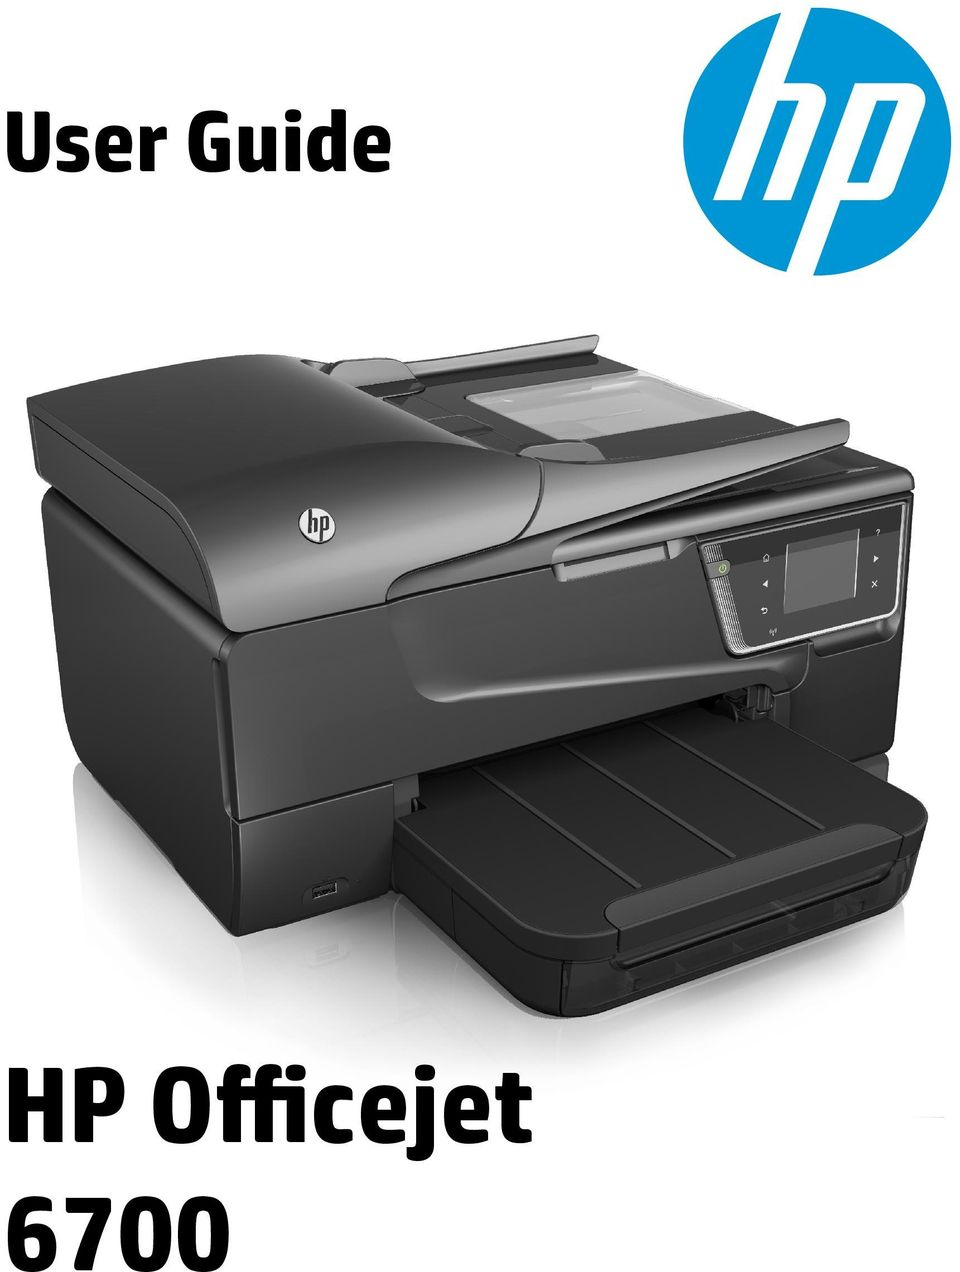 2 HP Officejet 6700 e-all-in- One series User Guide